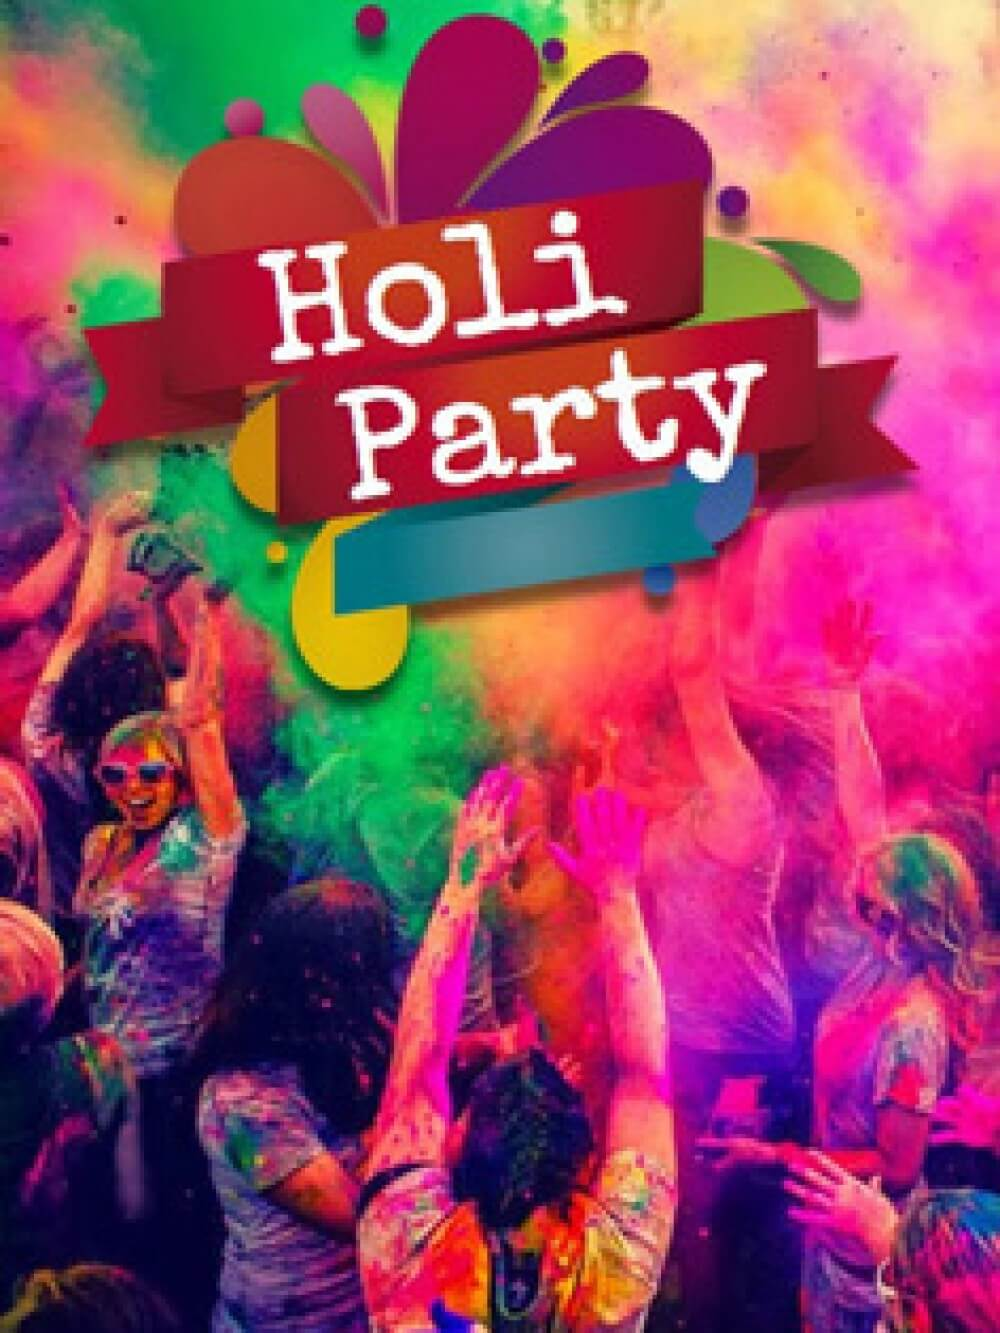 holi_party_vertical_web